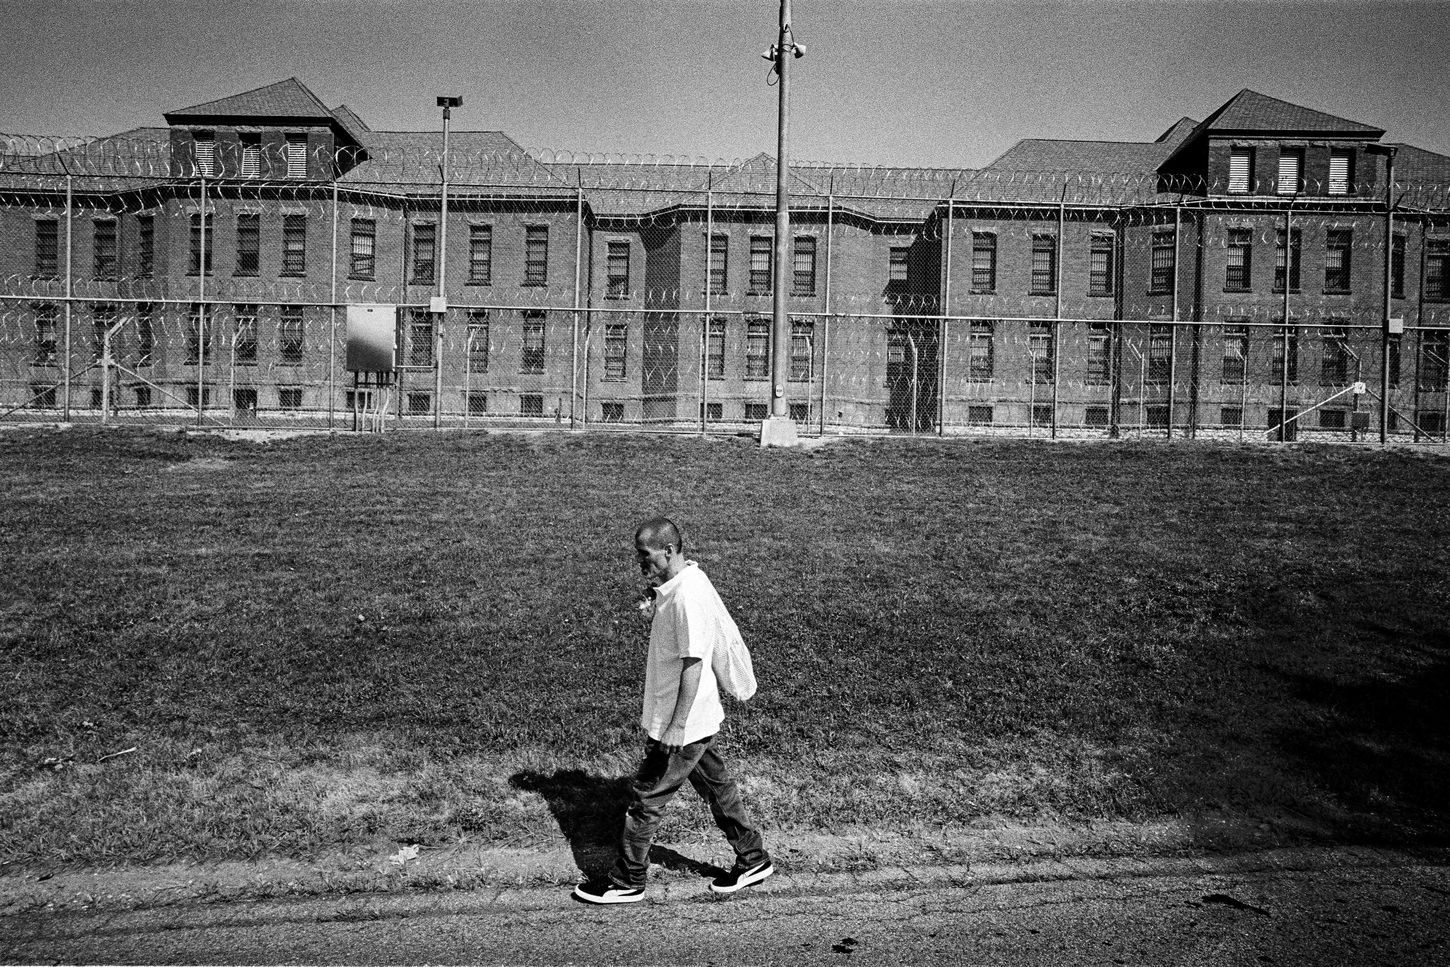 black & white photo of a prisoner walking away from his former place of incarceration, Fishkill Correctional Facility in New York